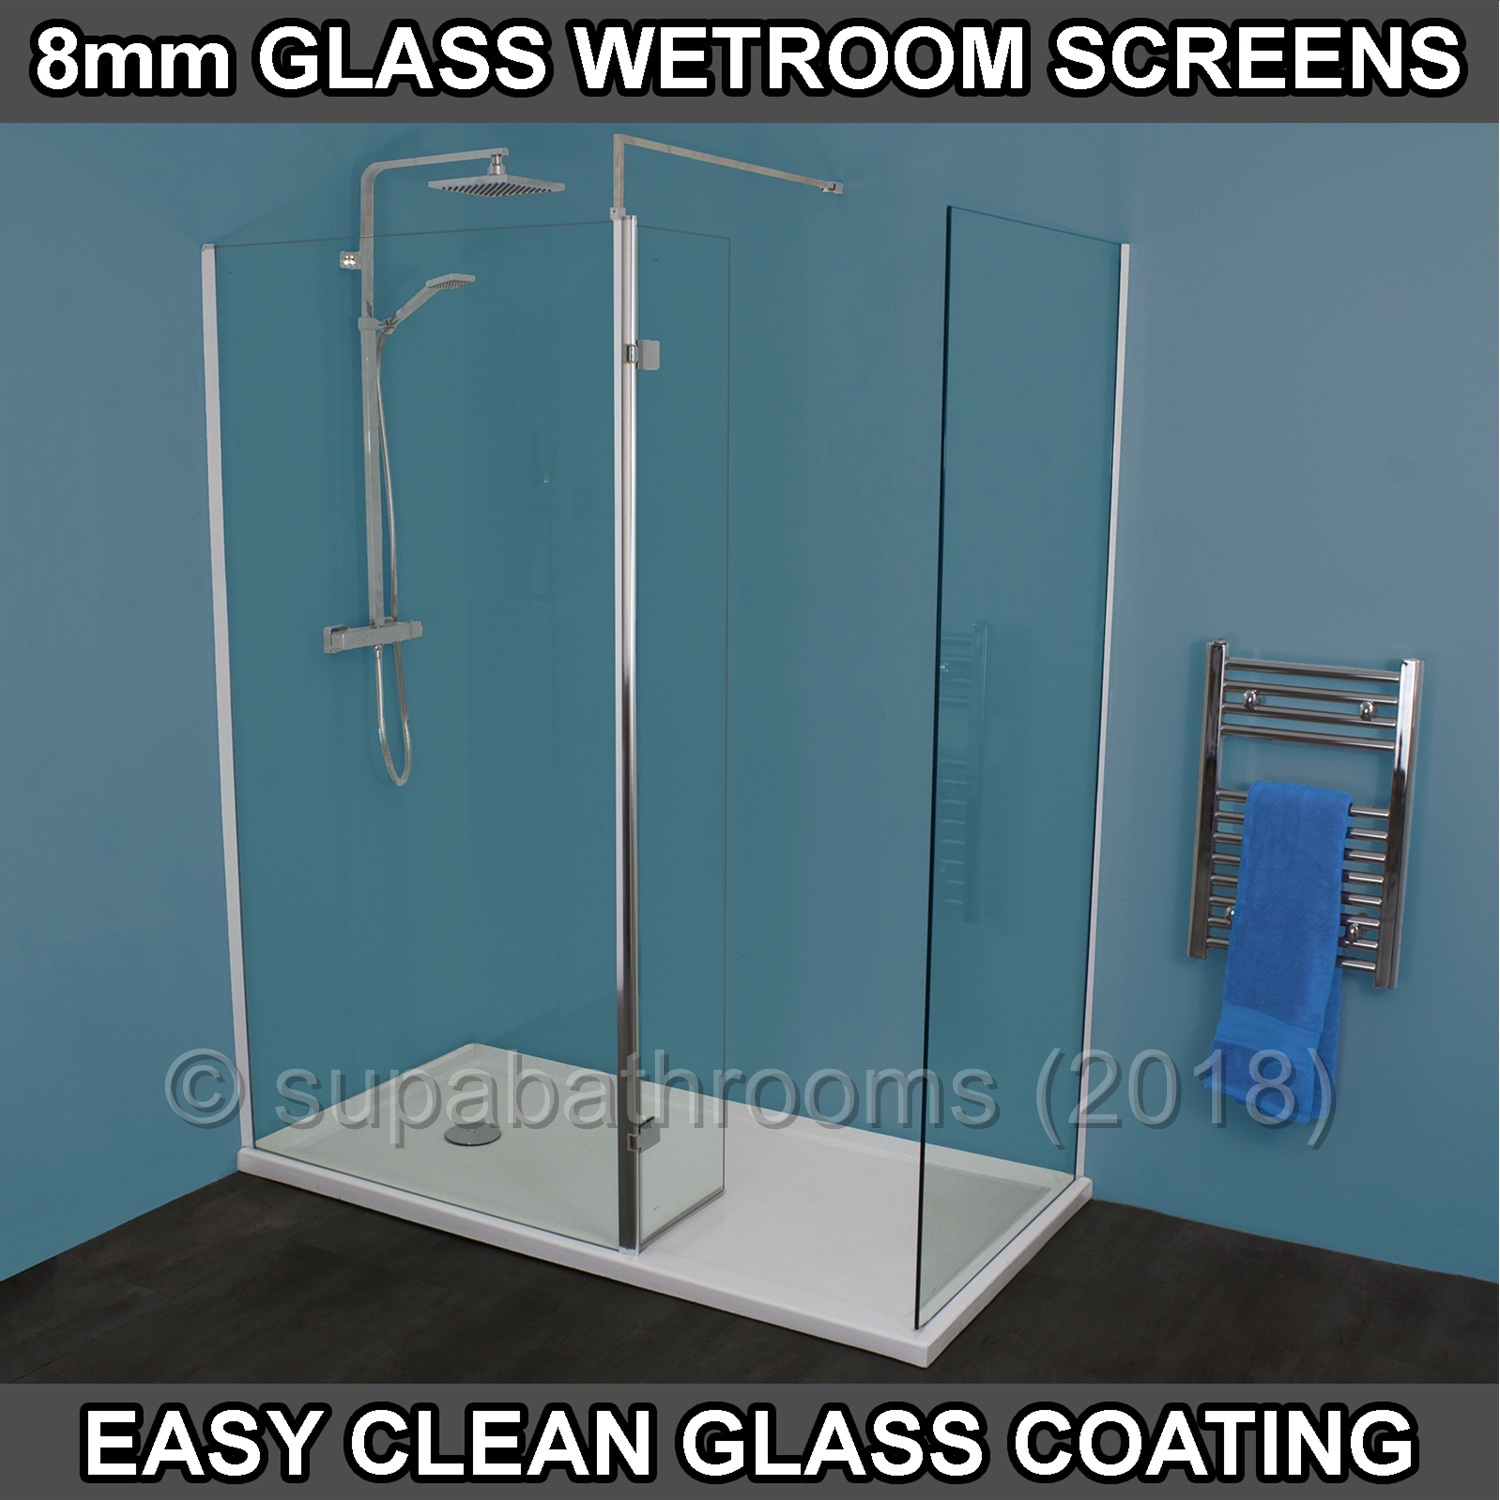 Metro Walk In Wet Room Shower Enclosure 8mm Glass Easy Clean Screen ...